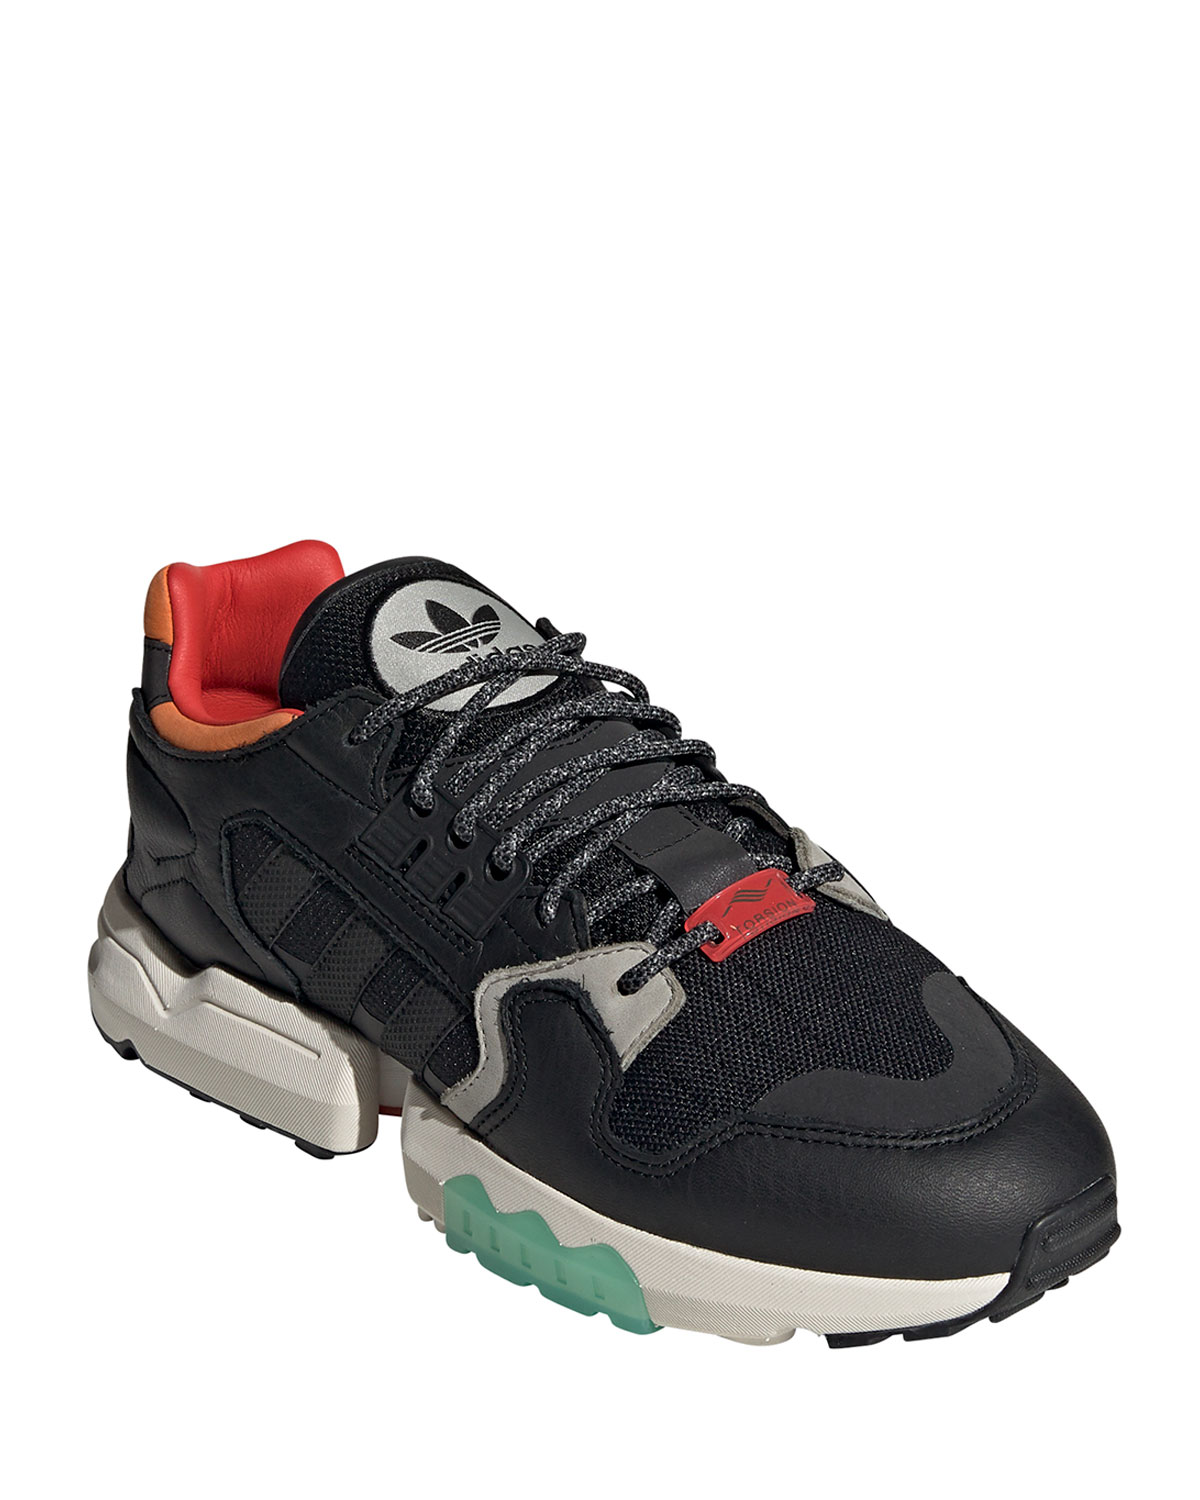 Adidas New York Trainer Sneakers Neiman Marcus    Adidas herre ZX Torsion Colorblock Trainer Sneakers   title=          Neiman